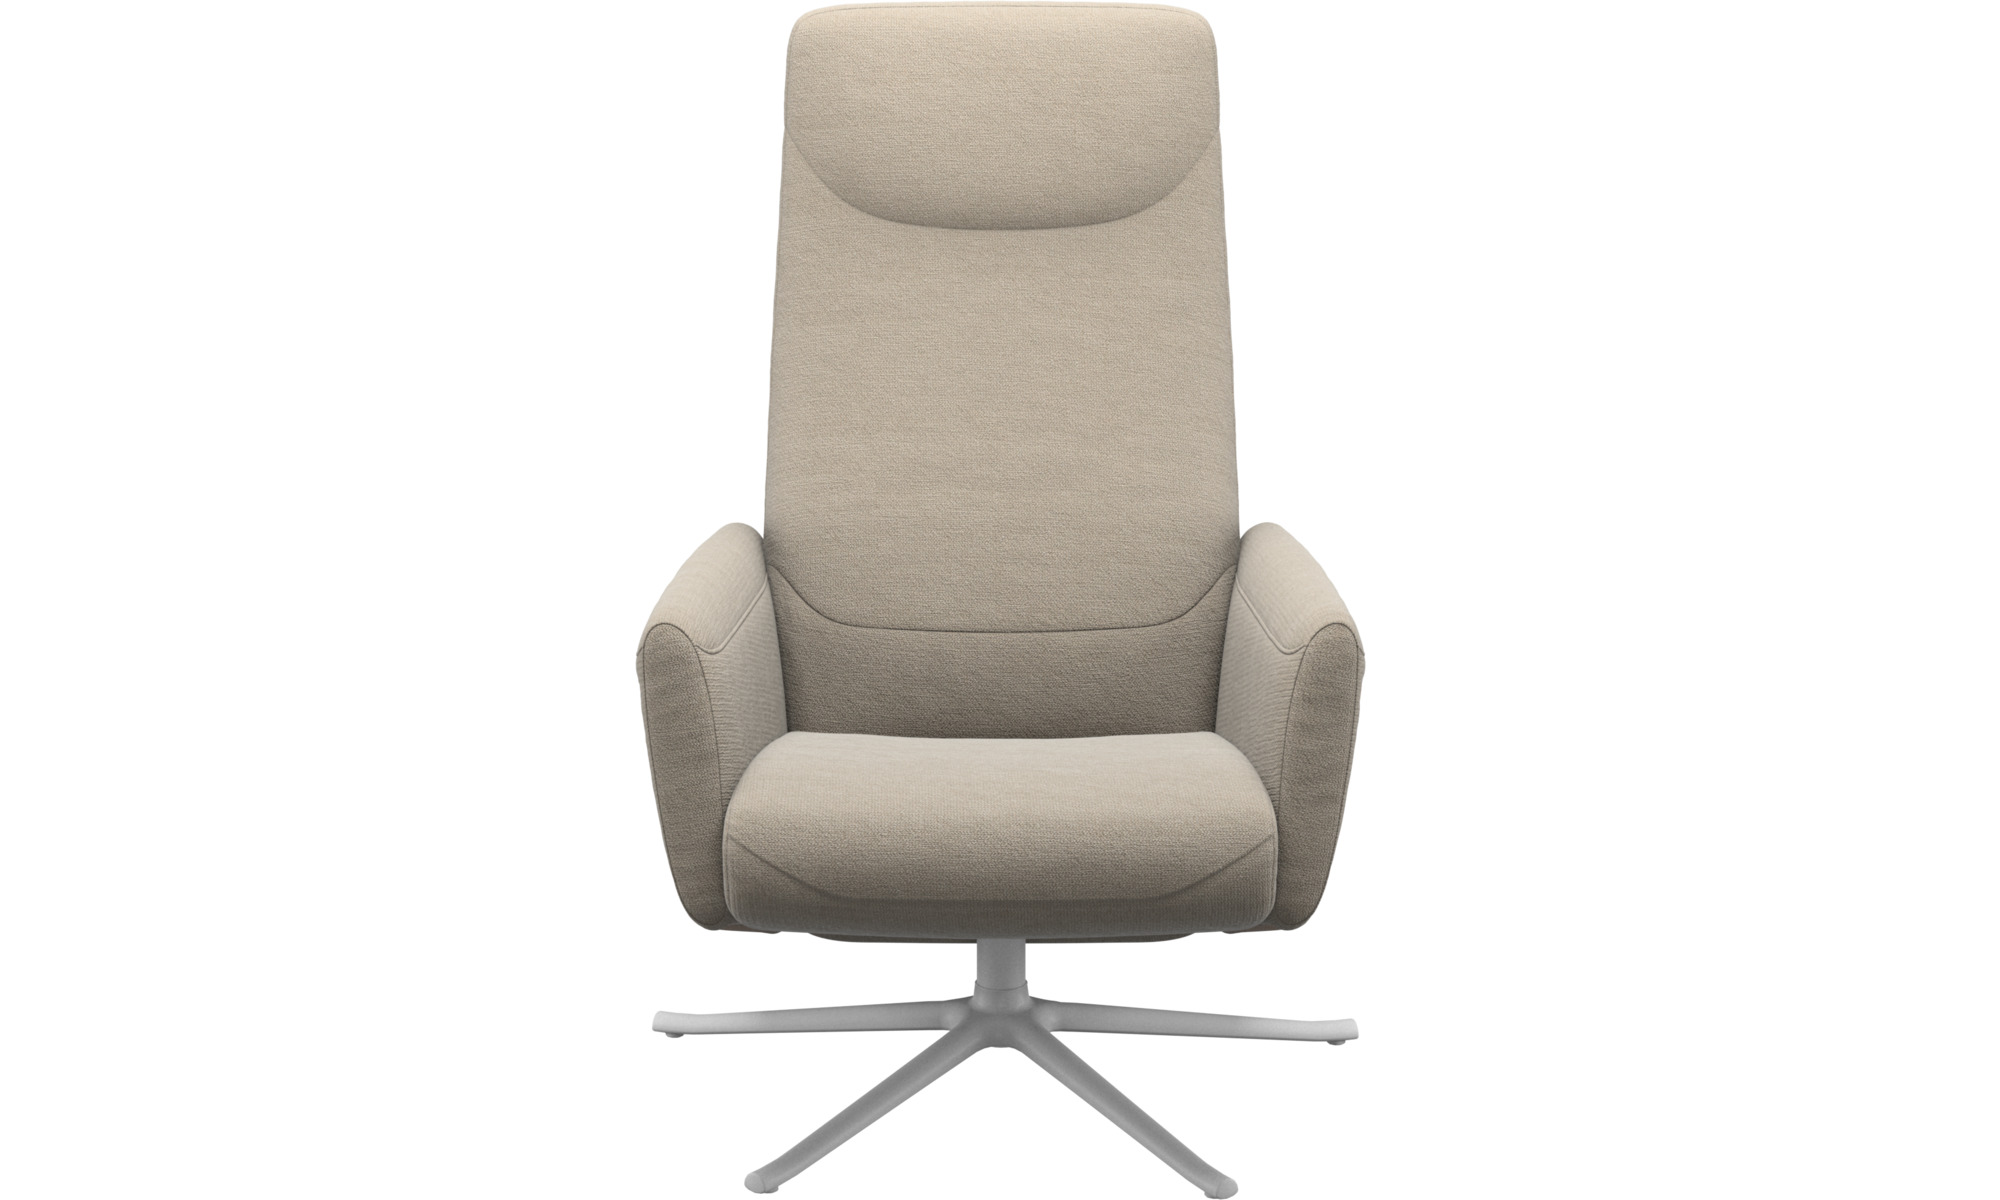 Poltrona Recliner Armchairs Lucca Recliner With Swivel Function Boconcept